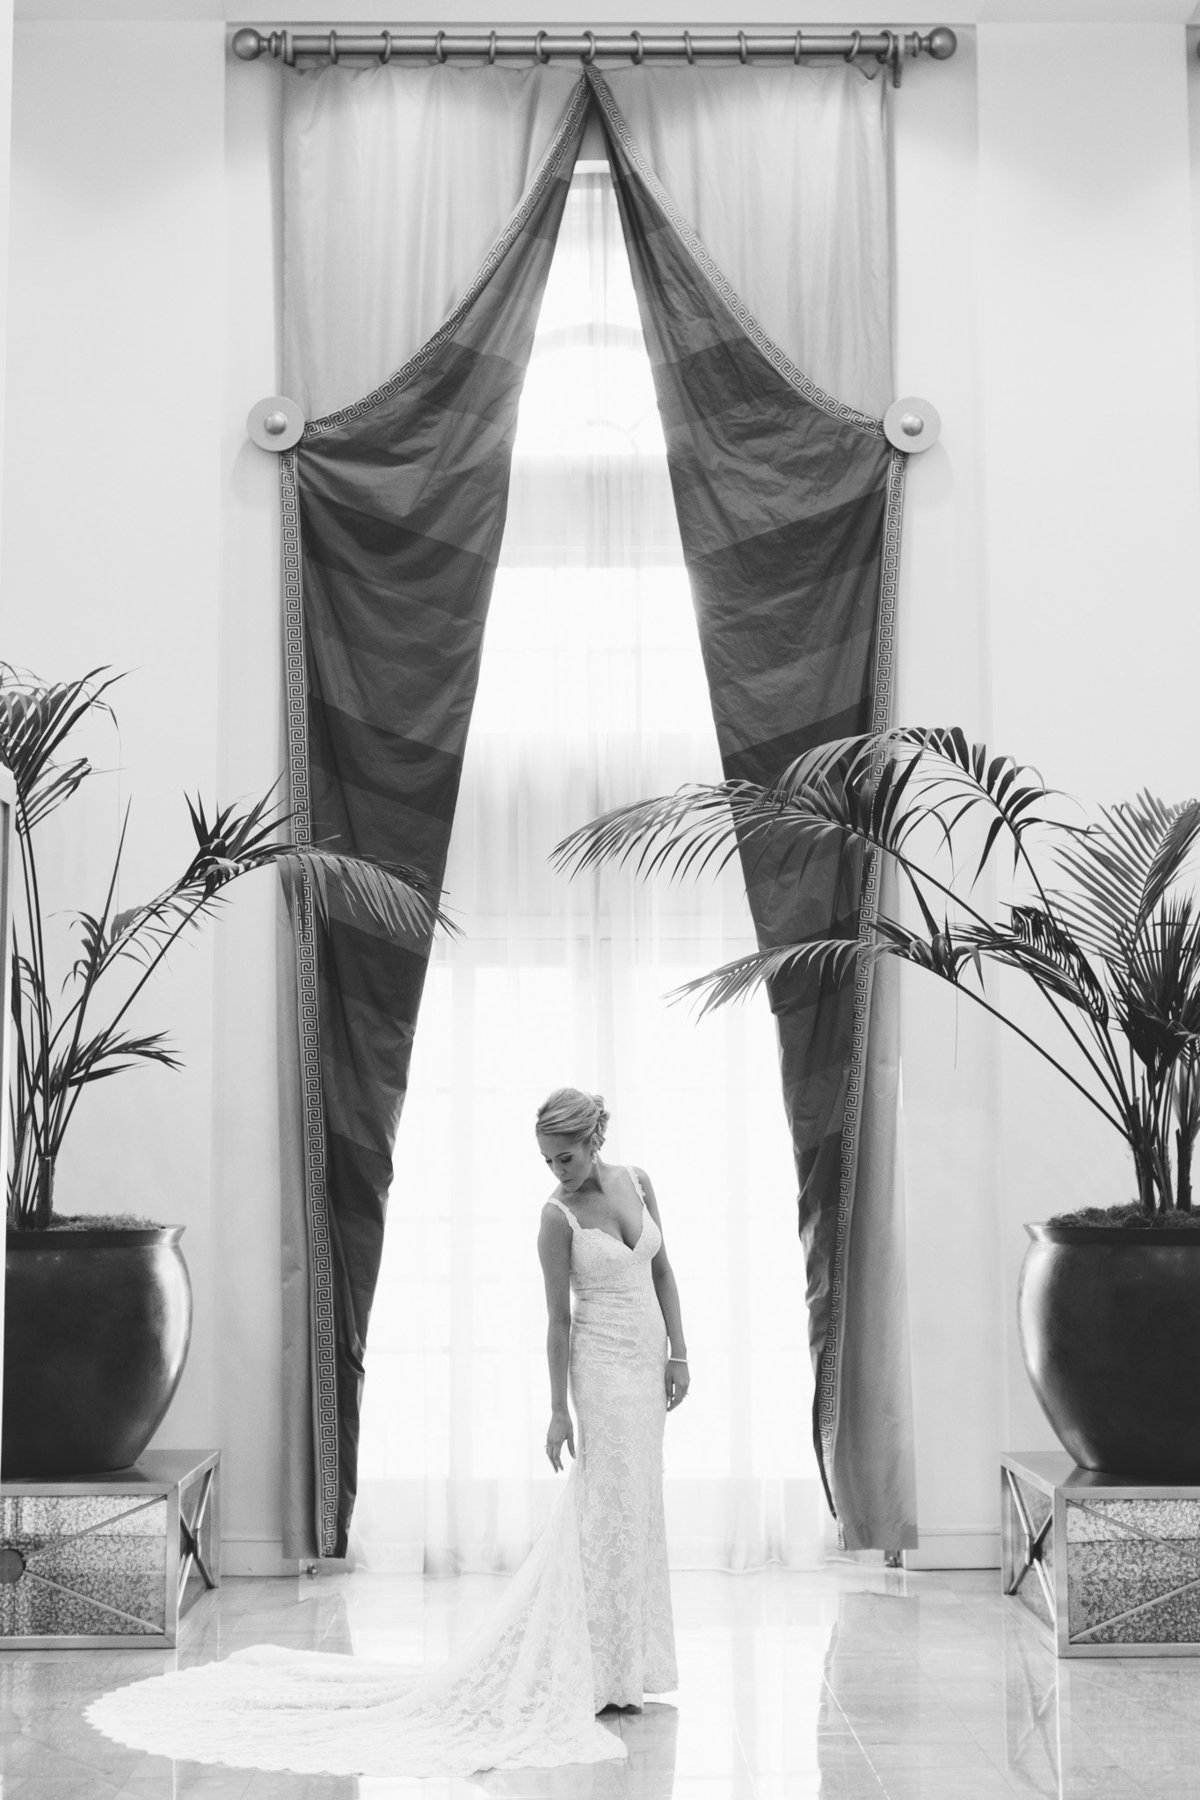 We are in love with this classic black and white bridal portrait  captured by Atlanta's top wedding photographer, Rebecca Cerasani.